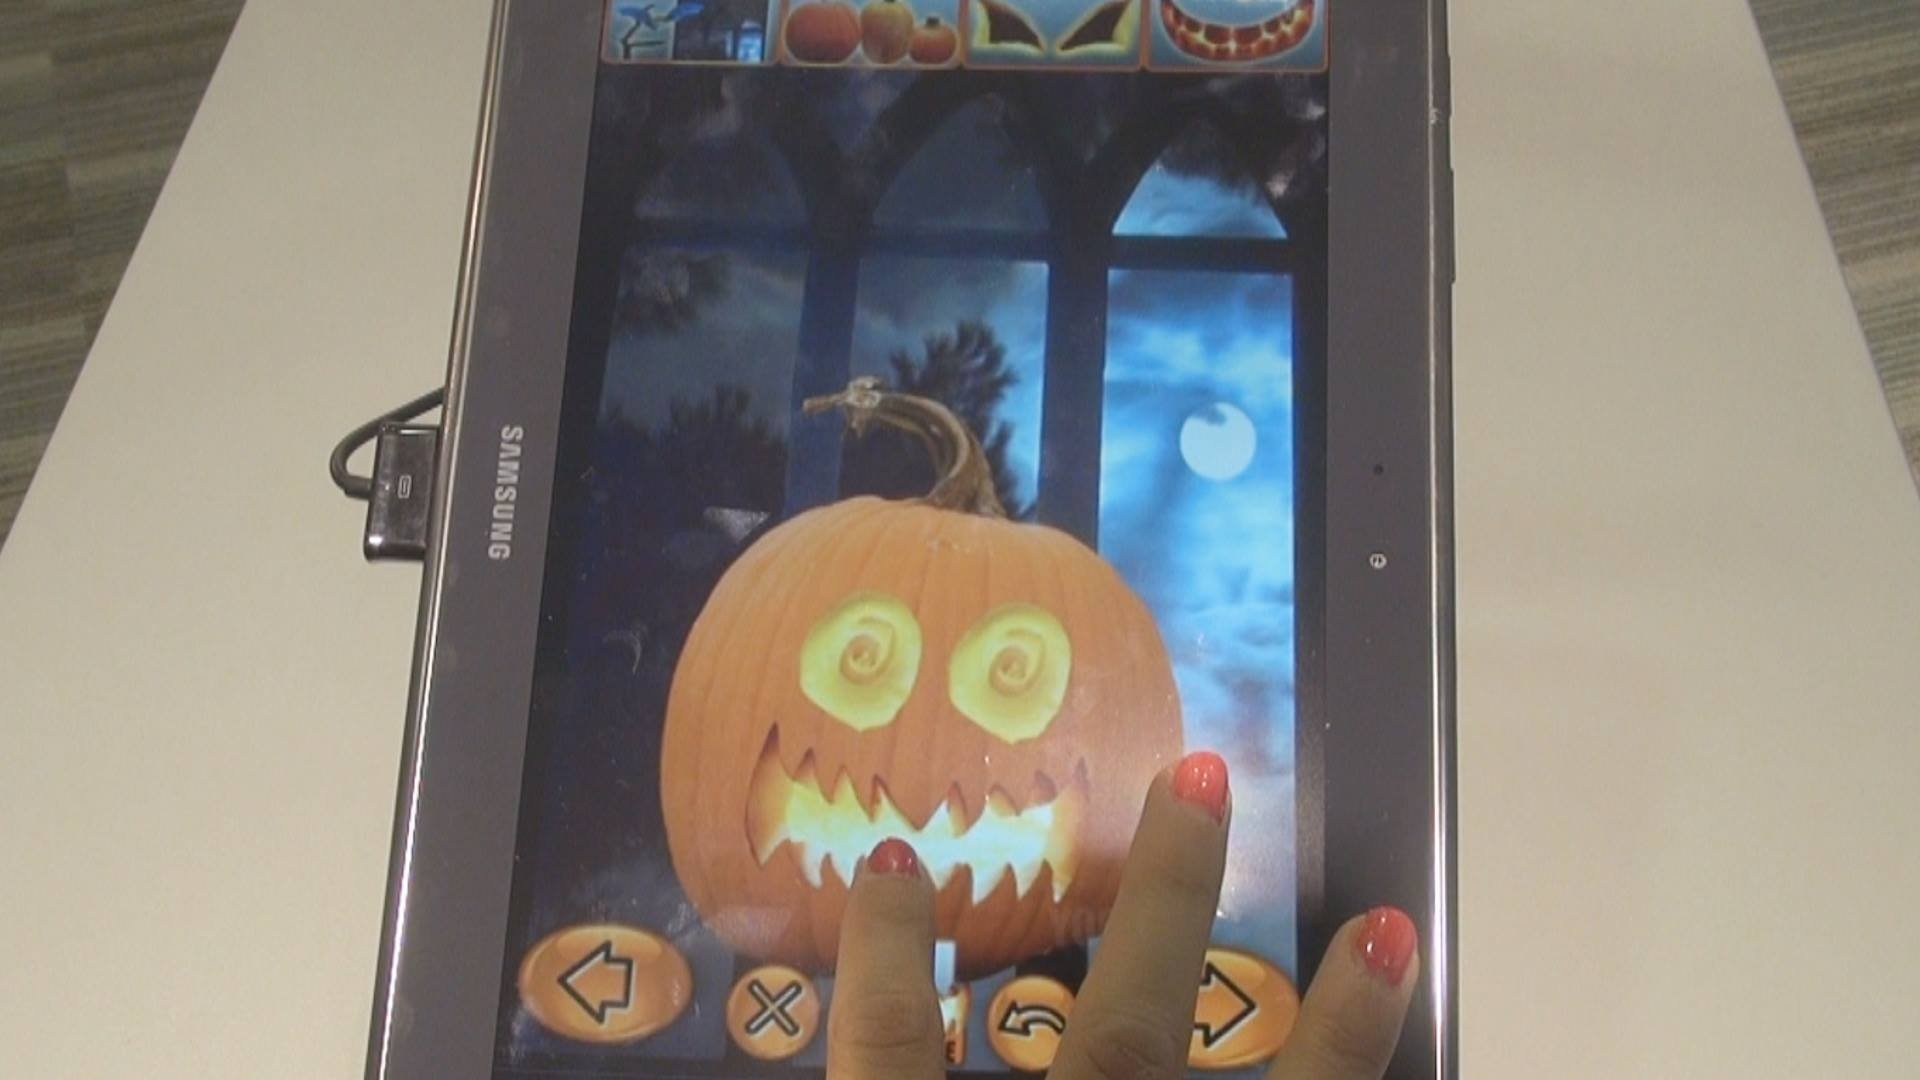 'Halloween Pumpkin Maker' App being used on a Samsung Tablet.